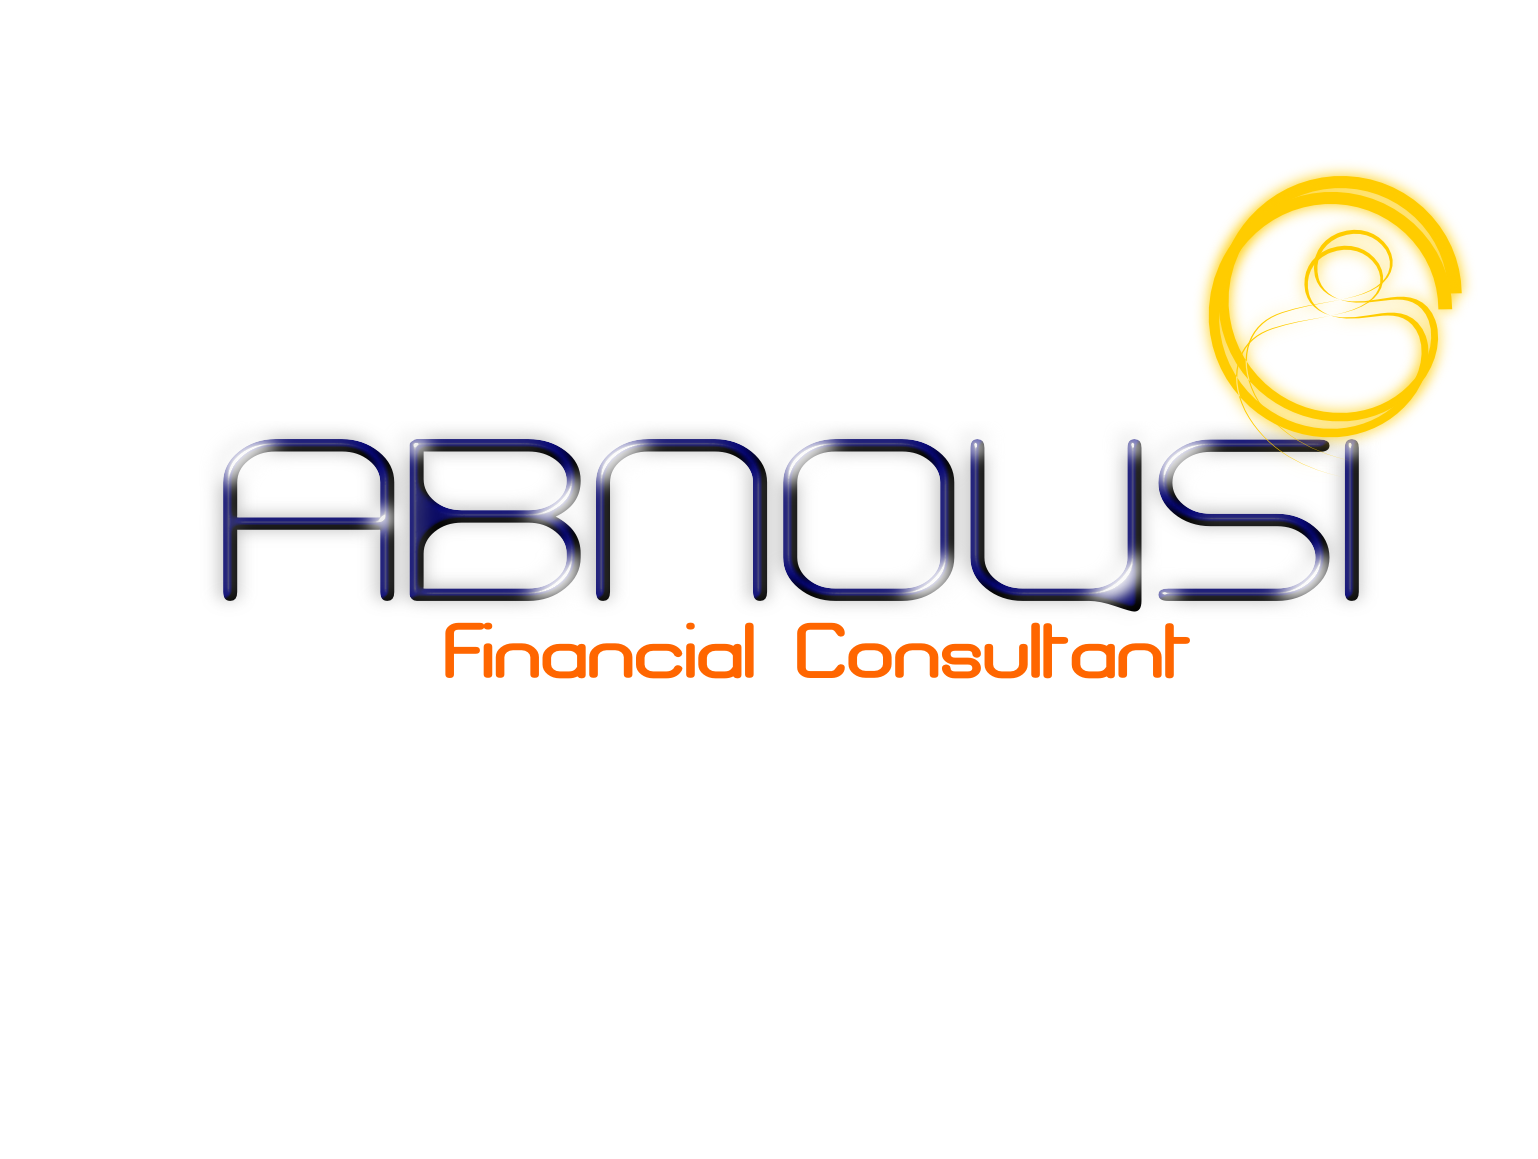 how to become a financial consultant in canada